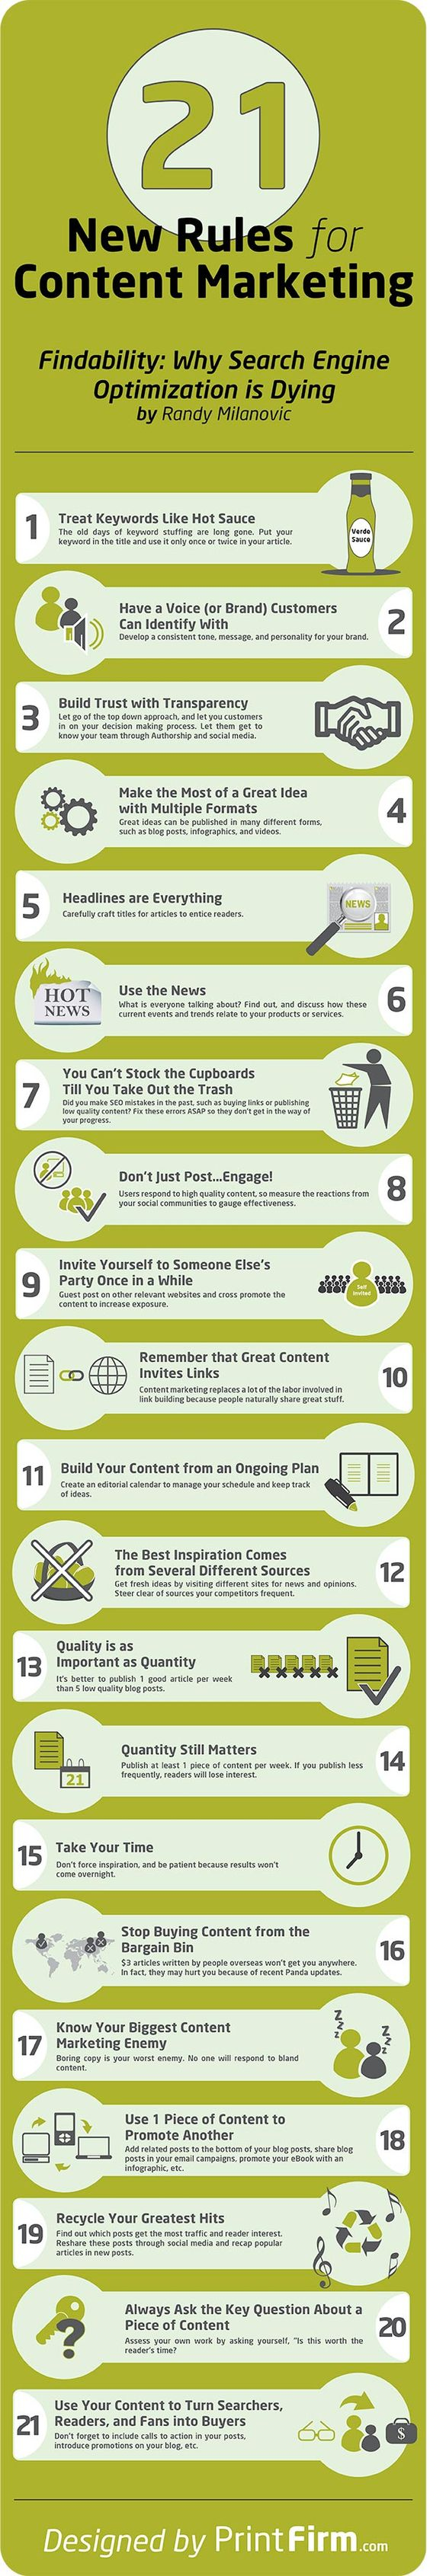 Rules of Content Marketing #infographic